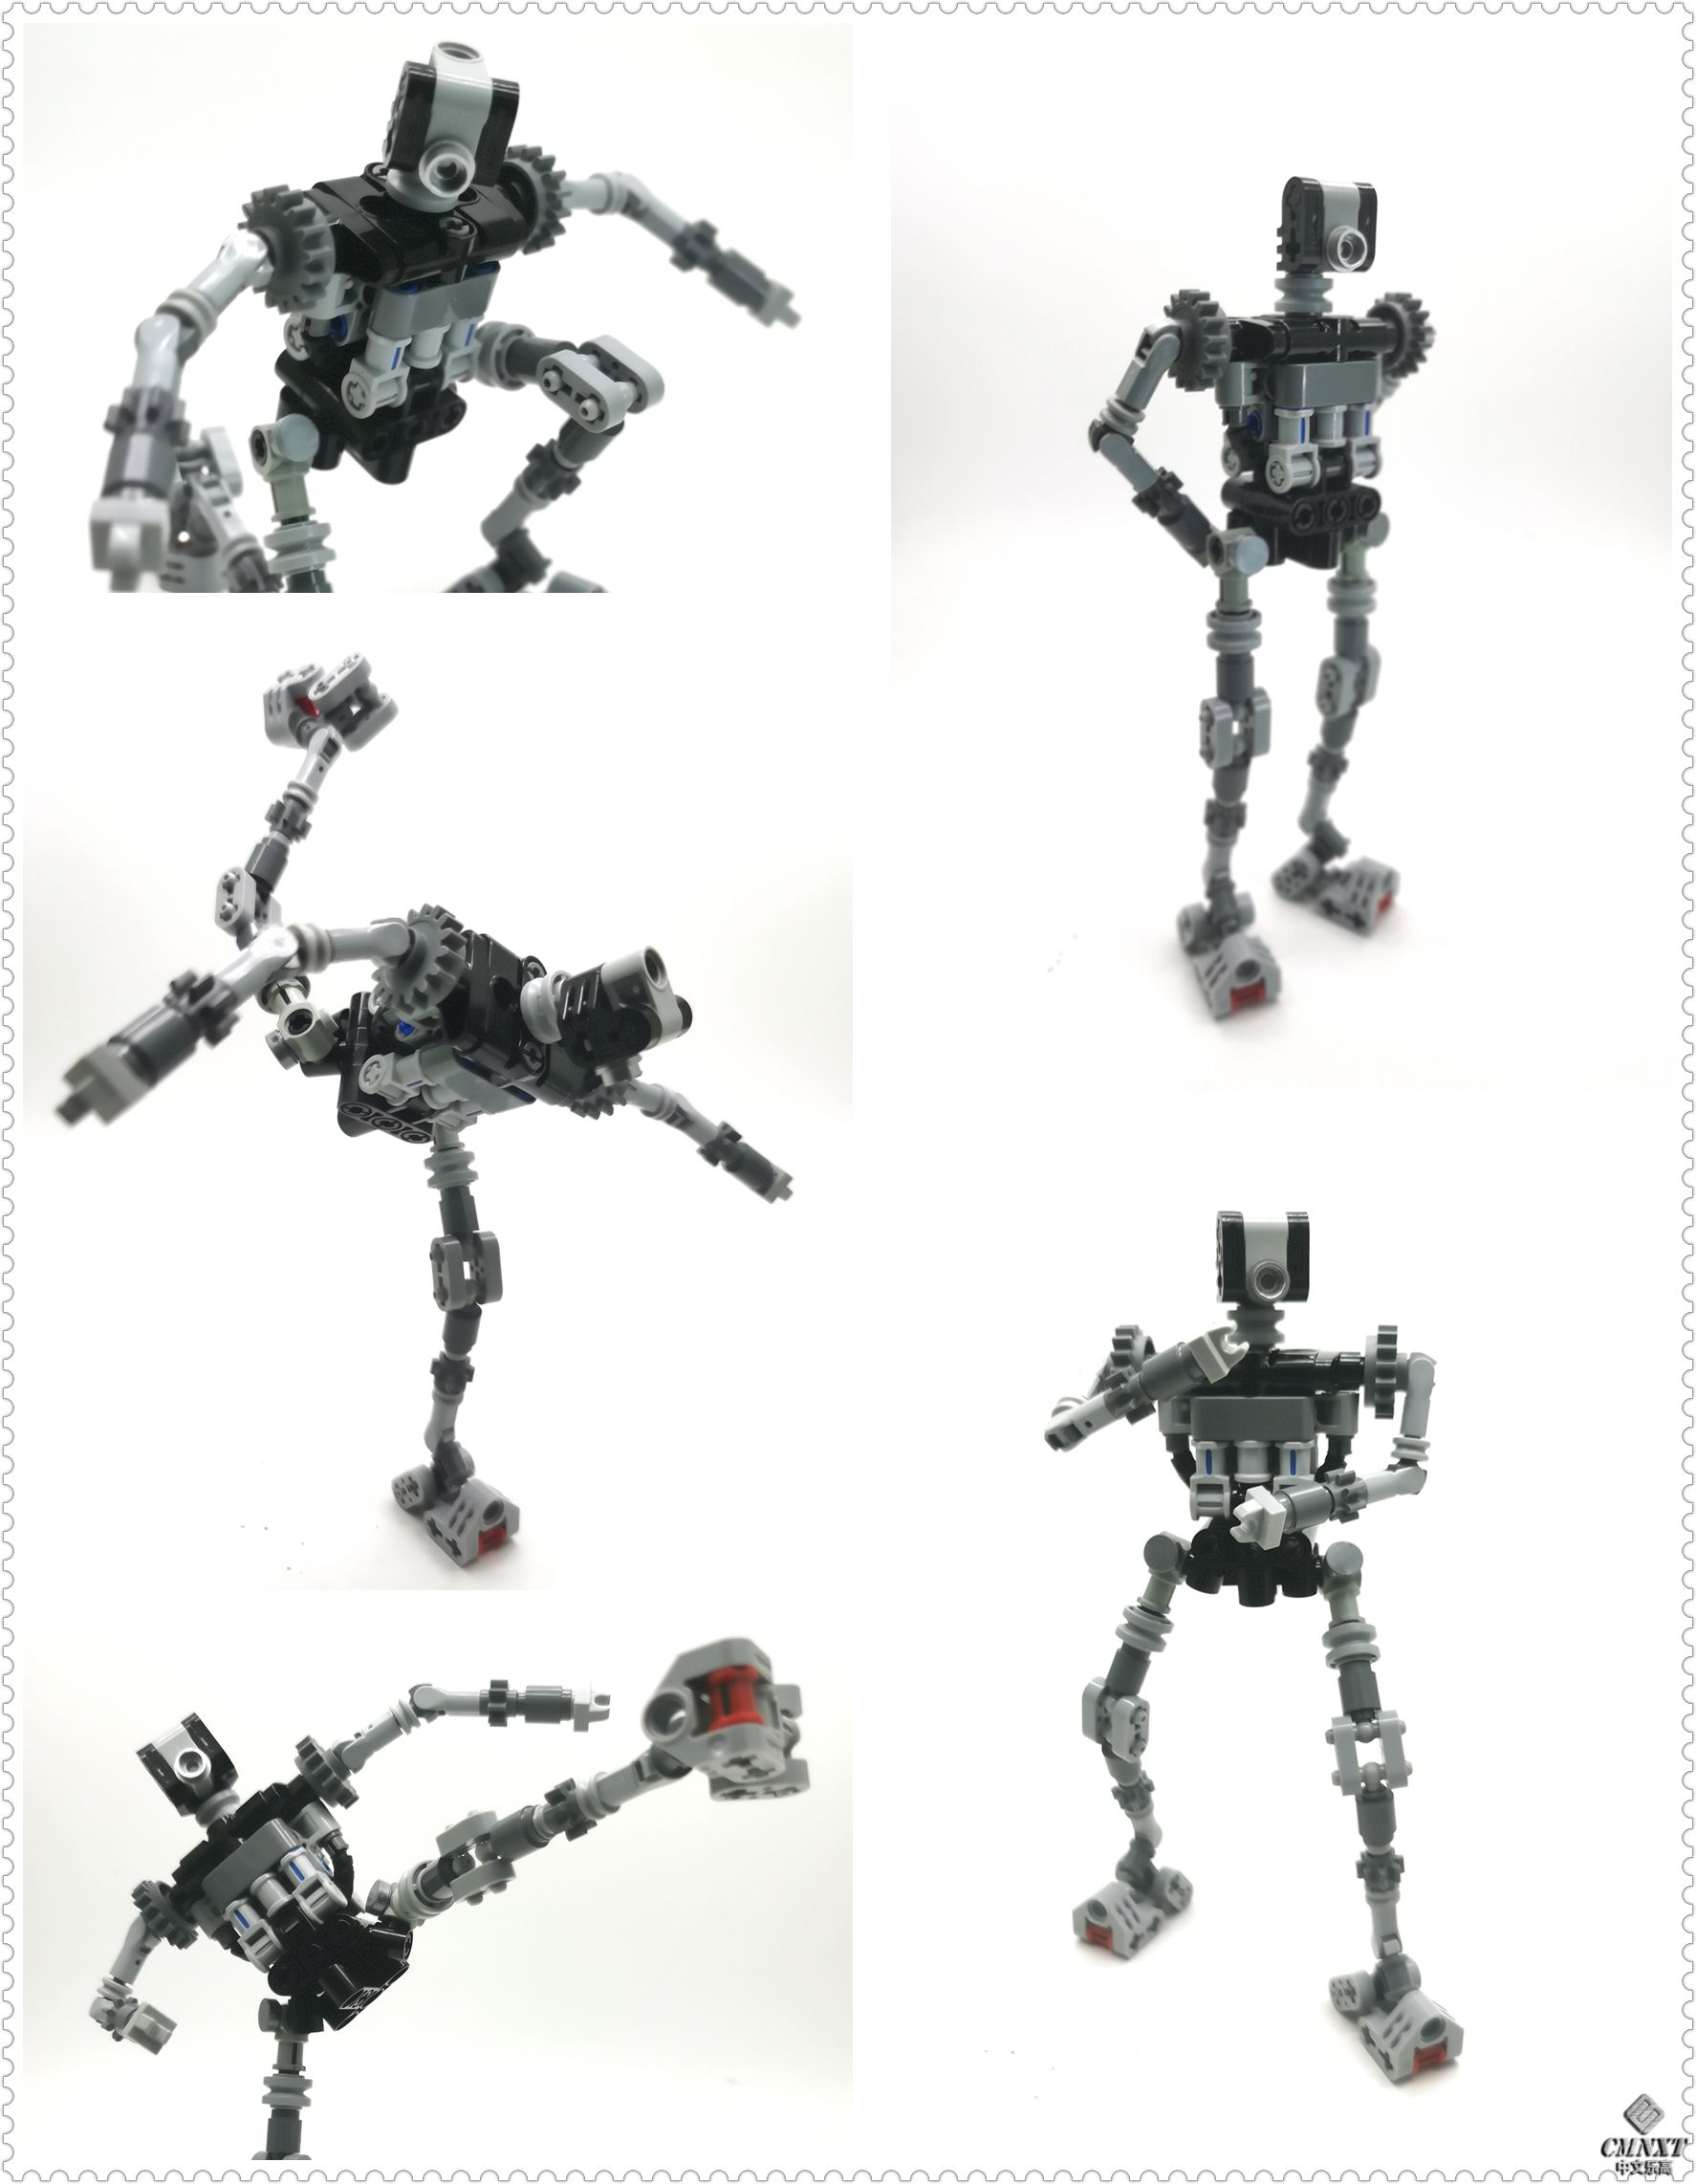 LEGO MOC 科技件大人仔 Large size technical figures conso 02.jpg